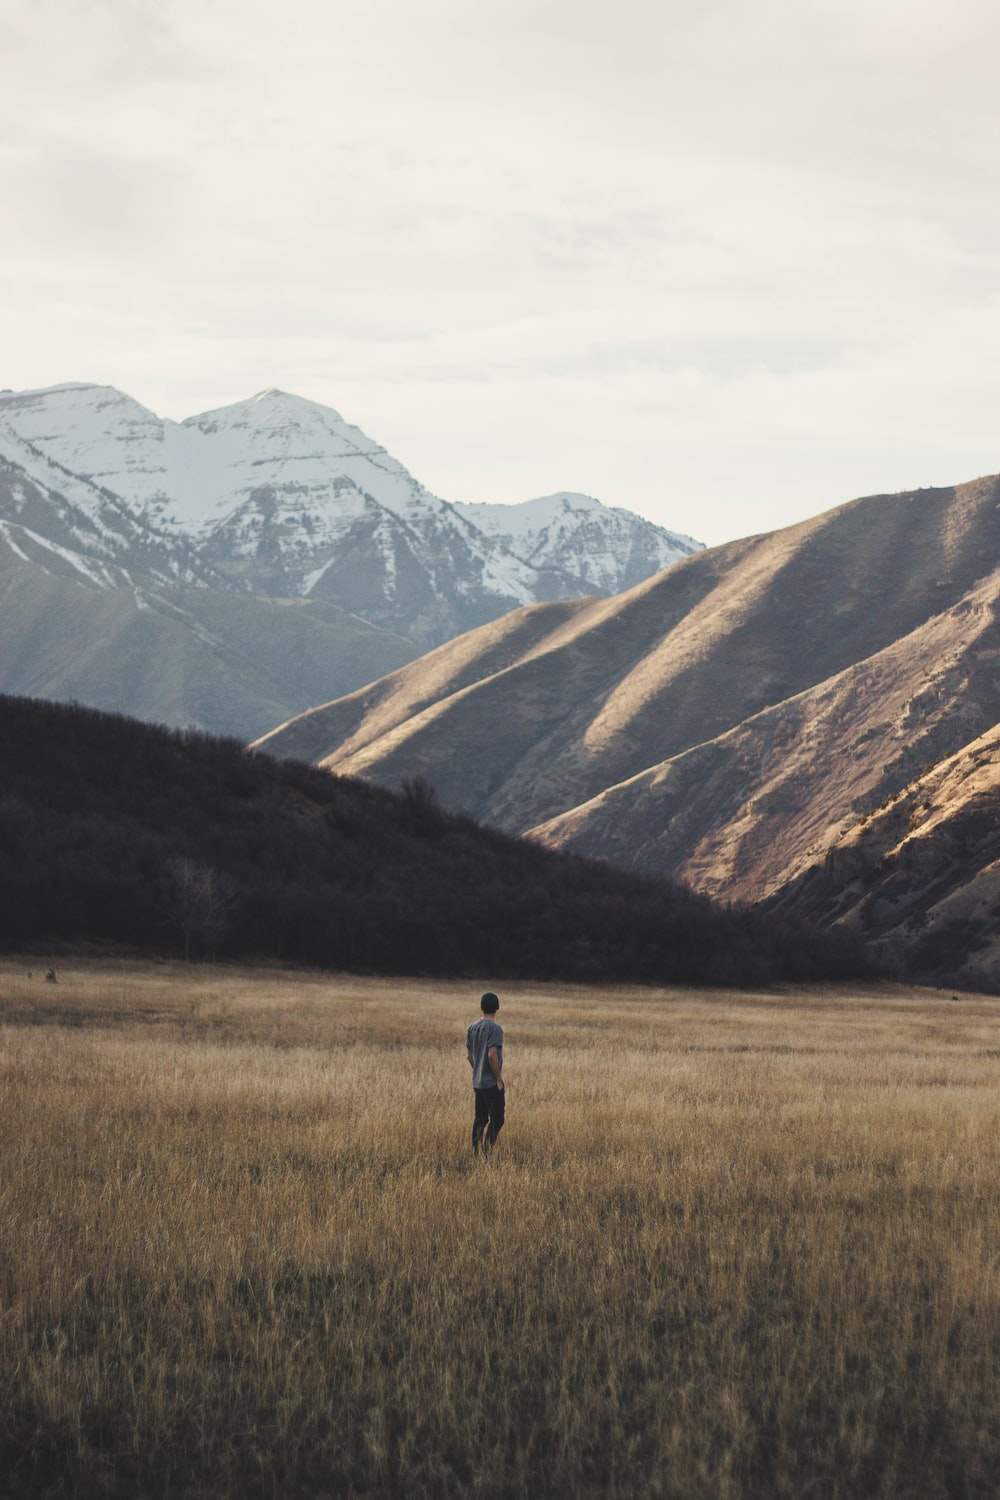 man standing on open field near mountain at daytime